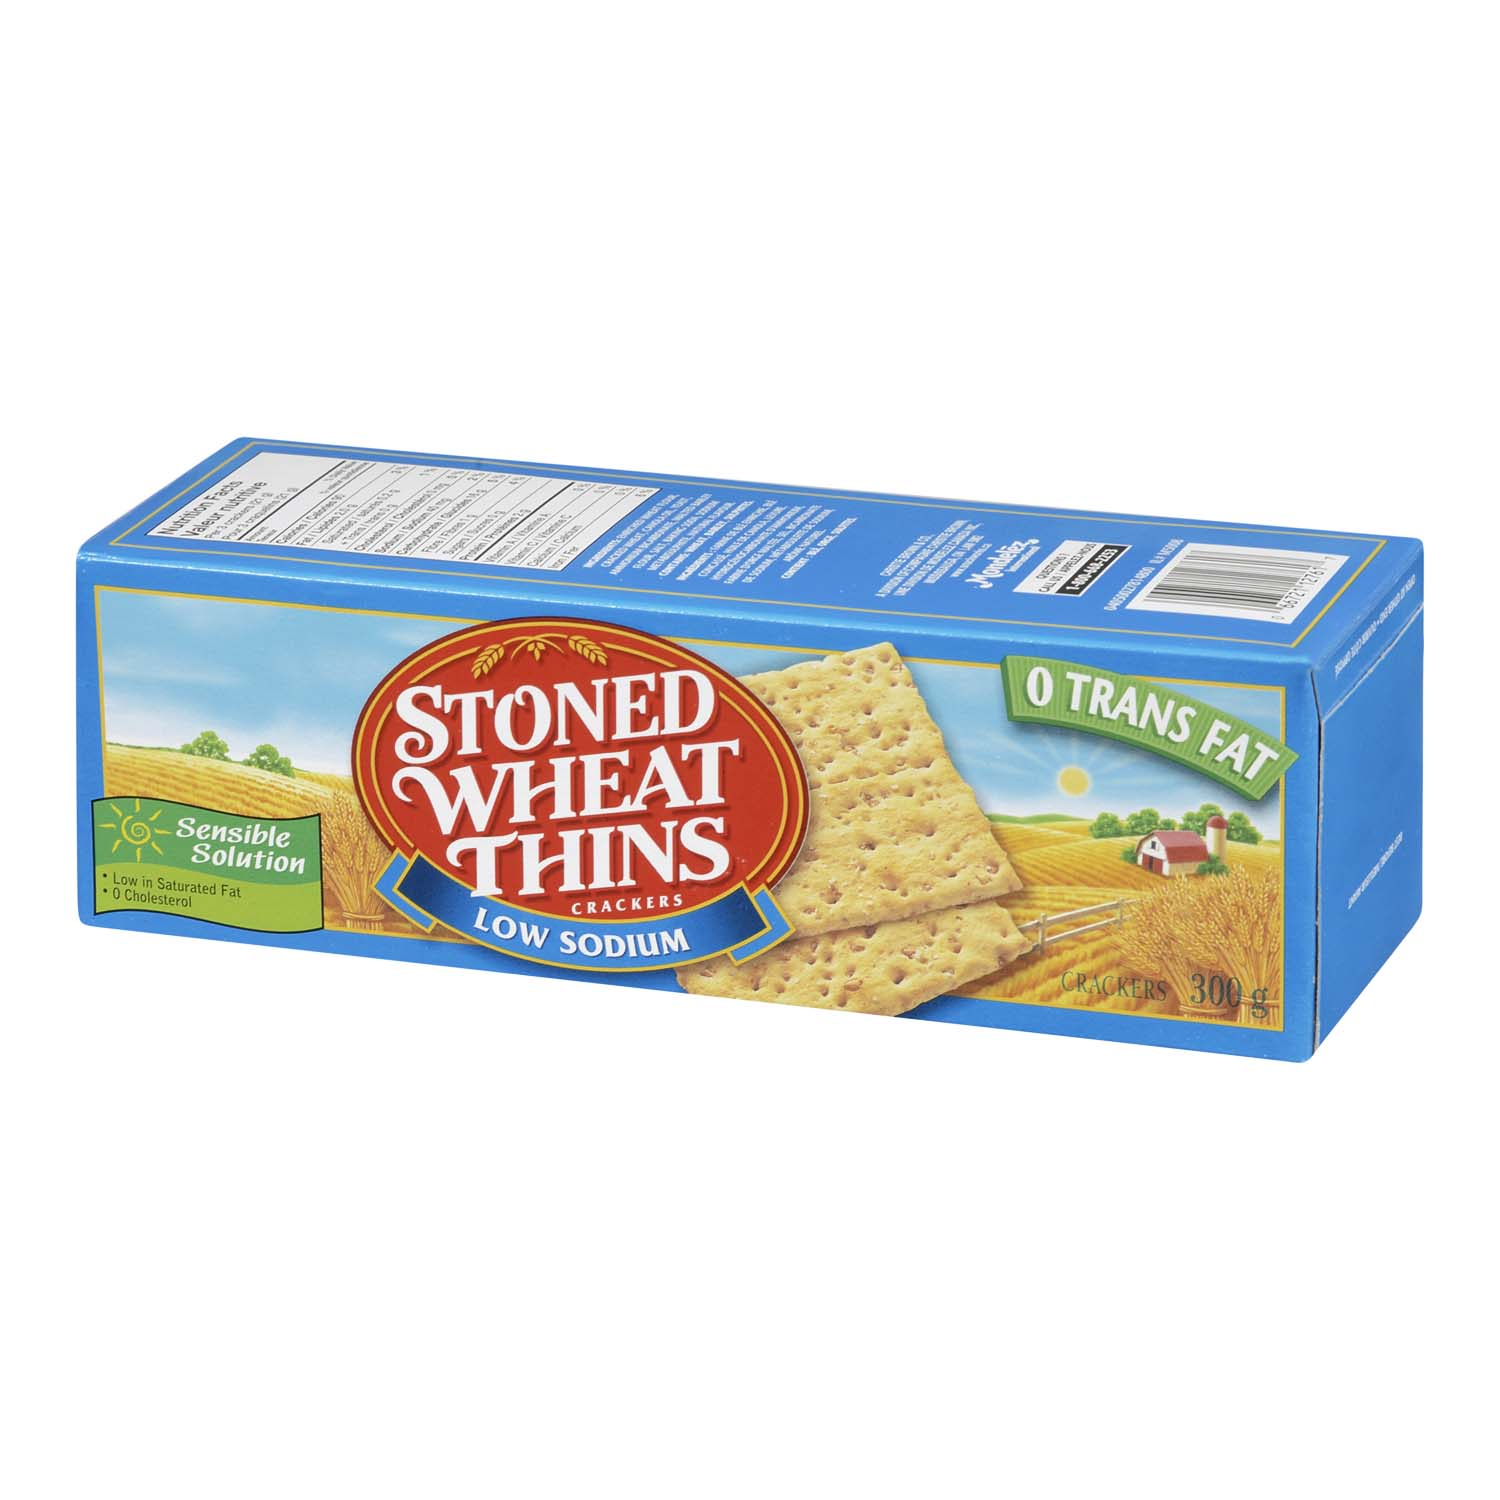 STONED WHEAT THINS - LSS SALT | Stong's Market